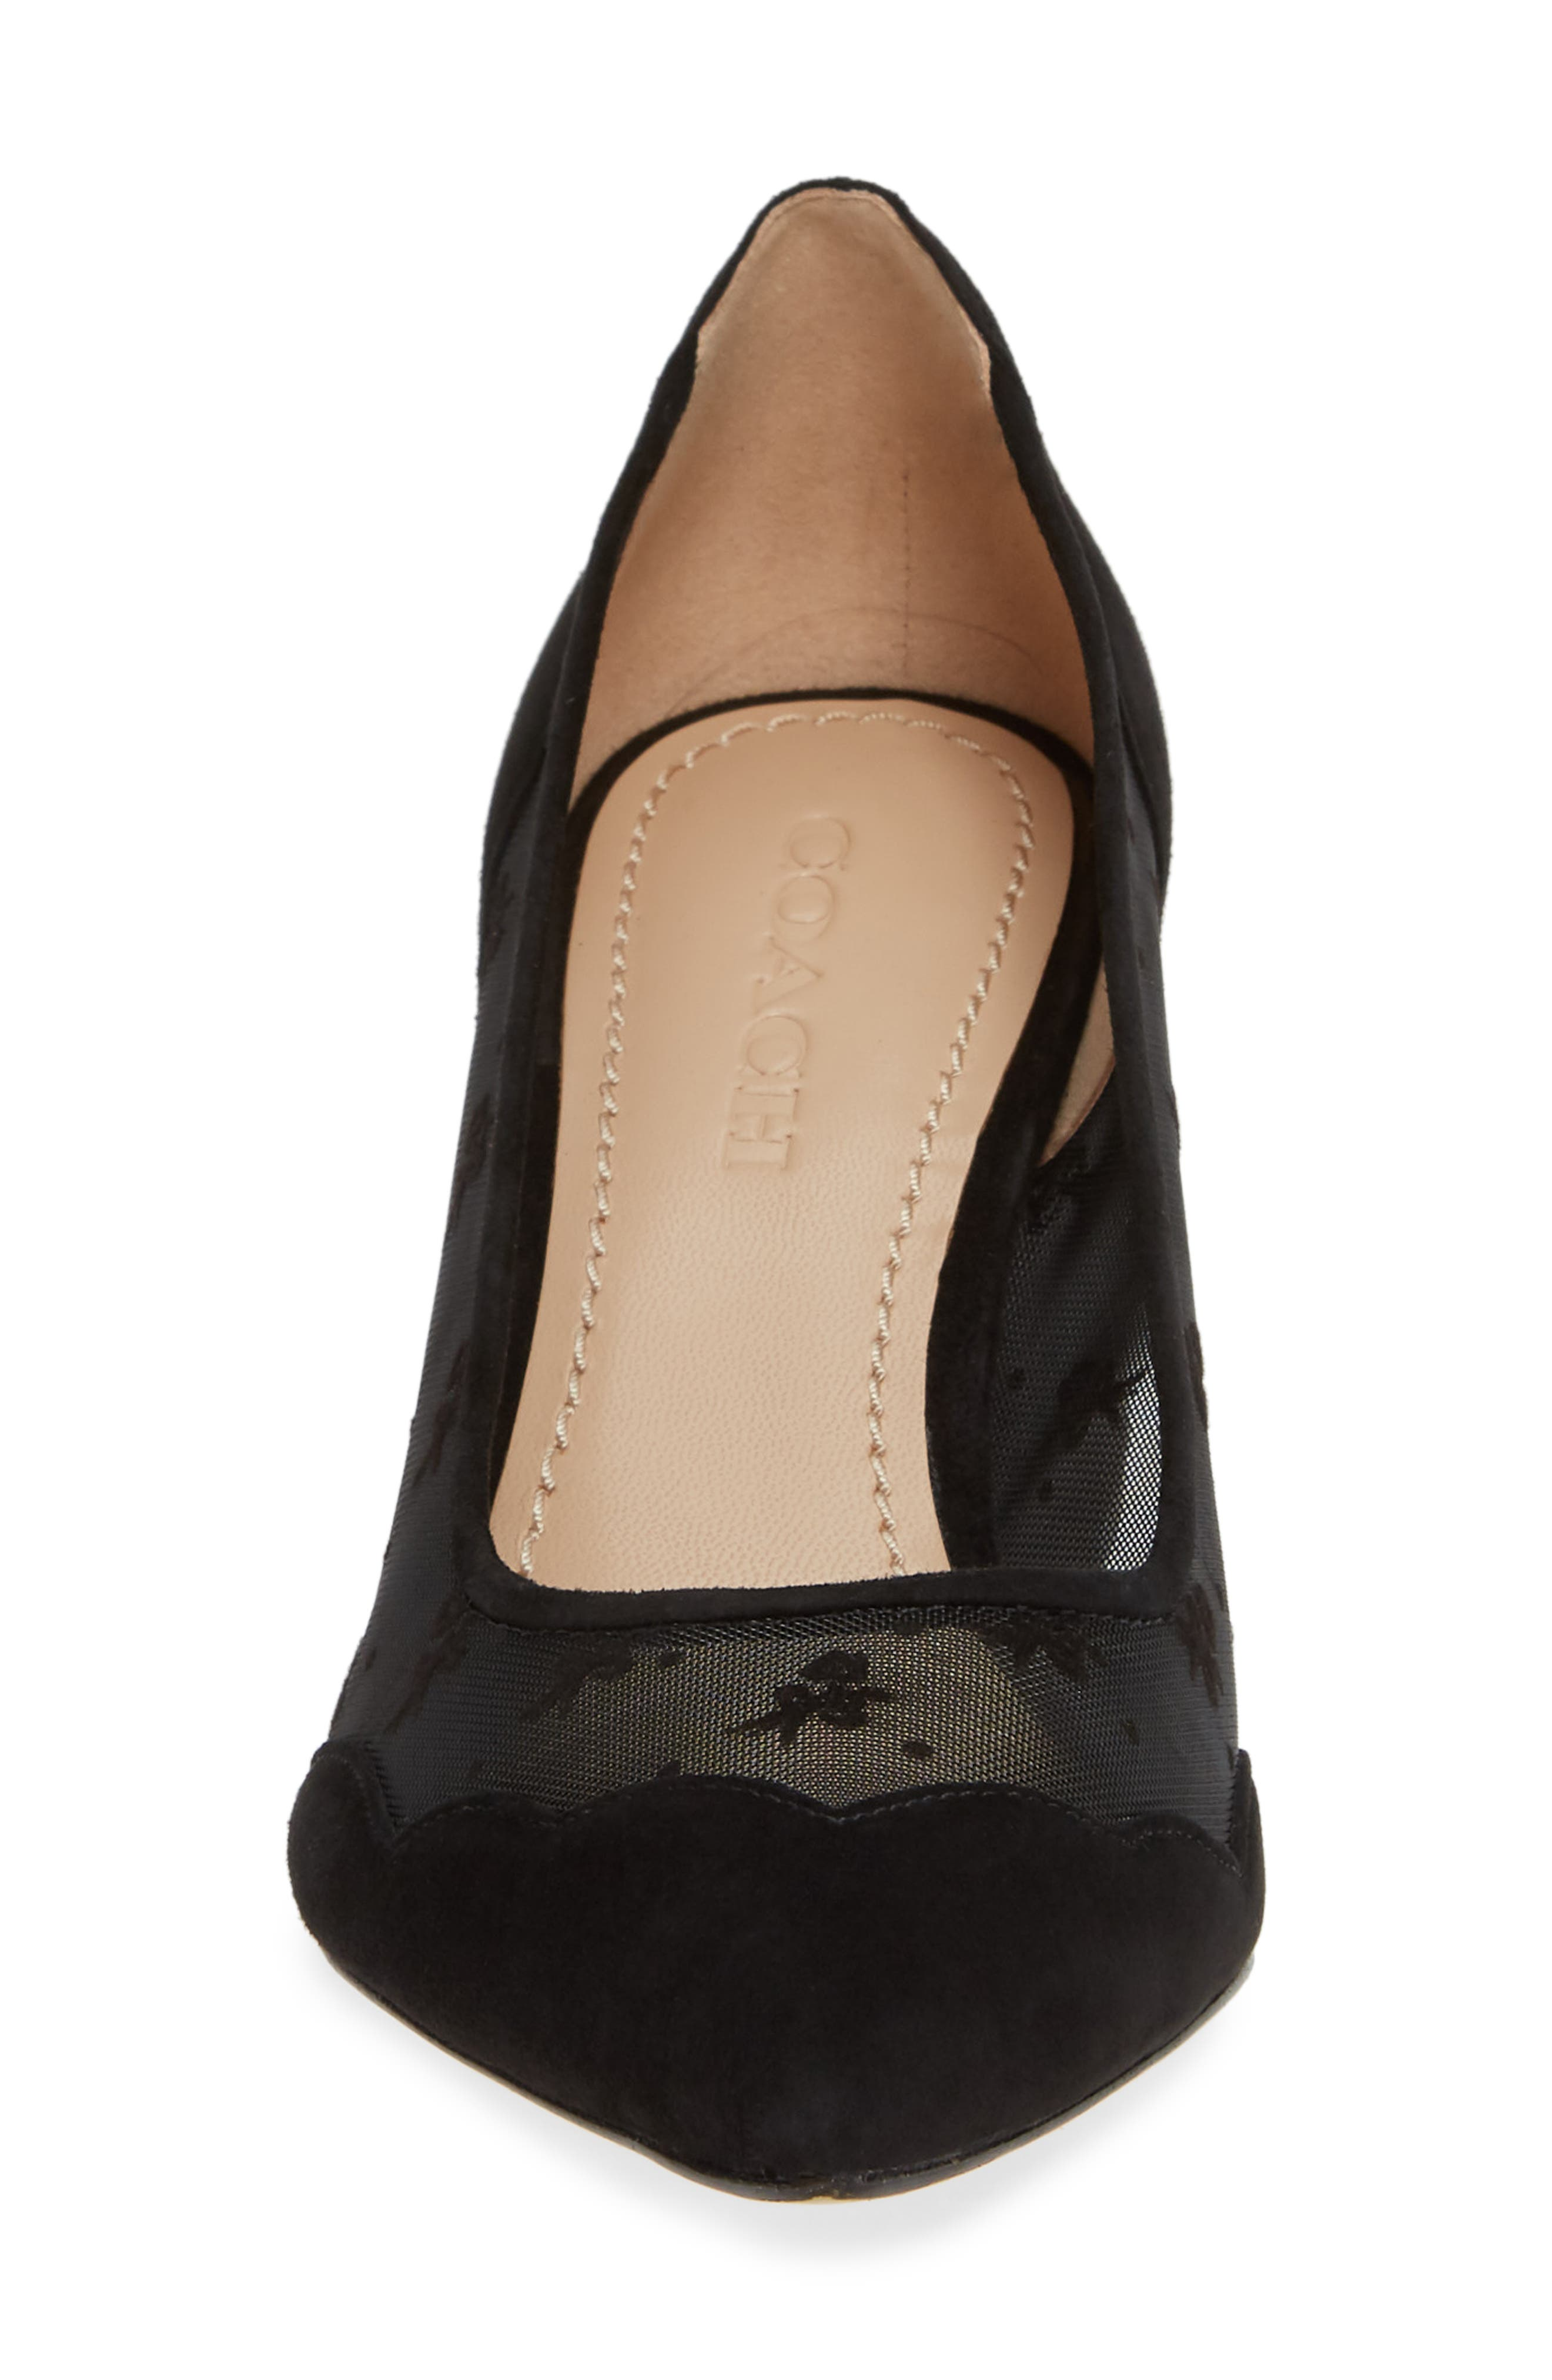 COACH, Whitley Scallop Pointy Toe Pump, Alternate thumbnail 4, color, BLACK SUEDE